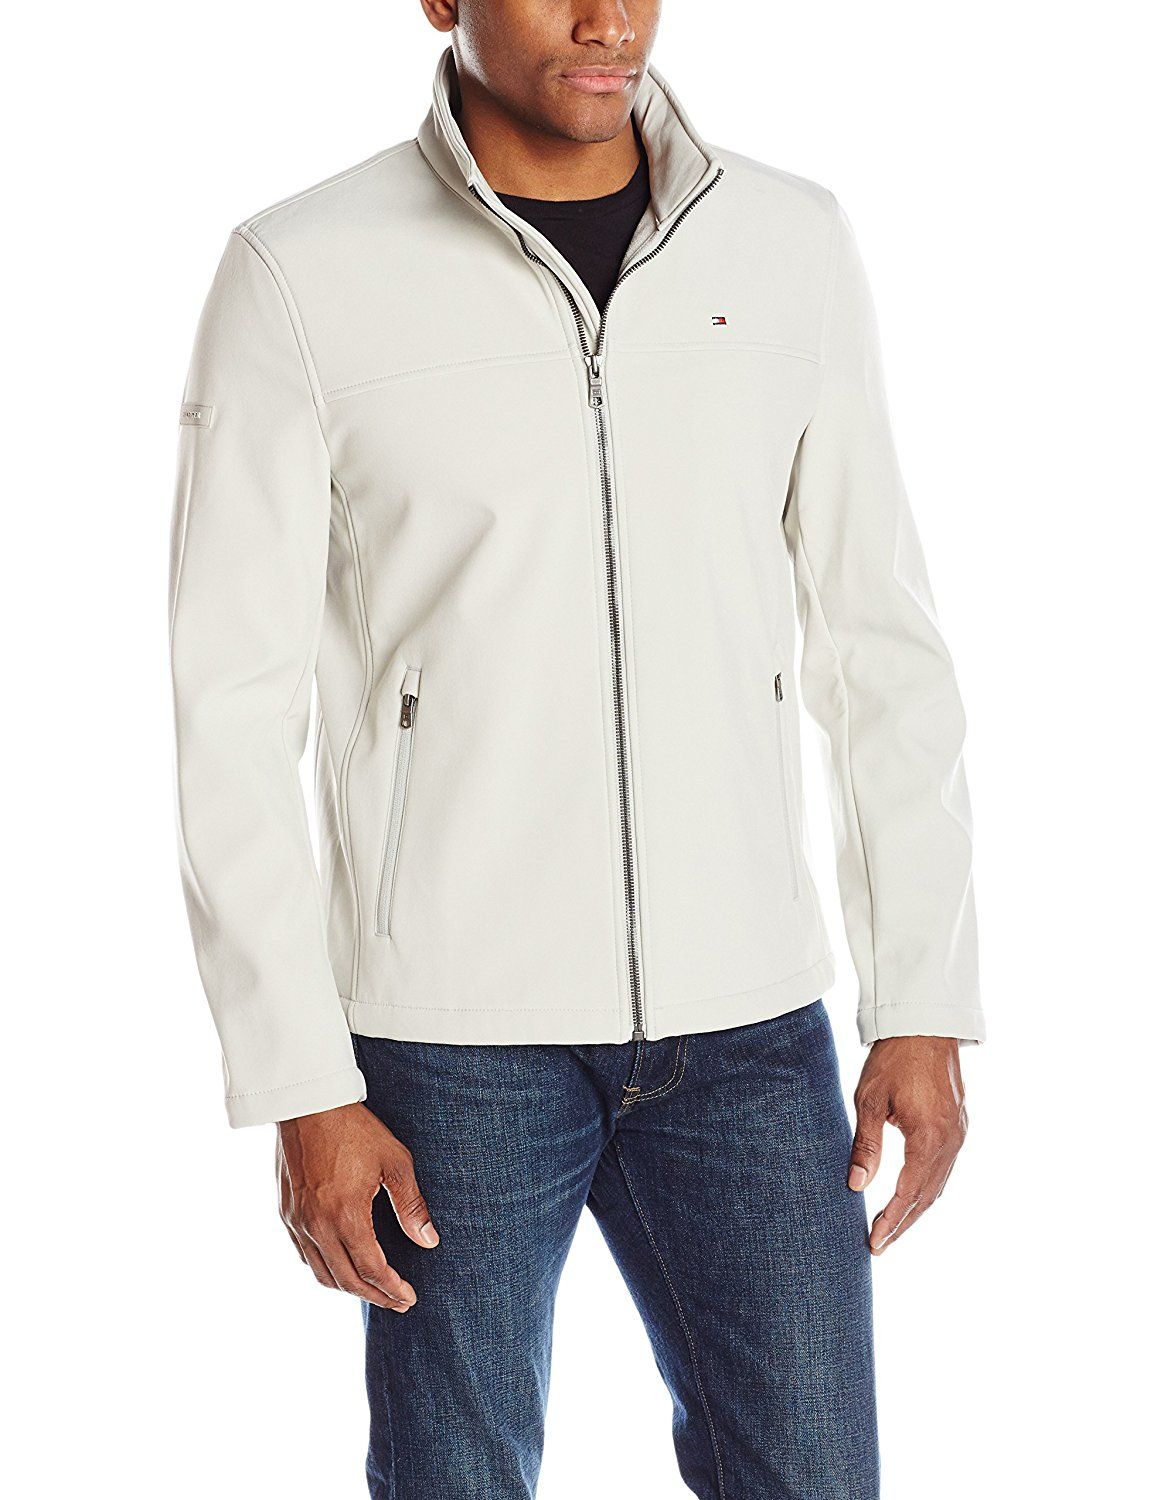 discount sale 100% authentic hot product Tommy Hilfiger Men's Classic Soft Shell Jacket at Amazon ...